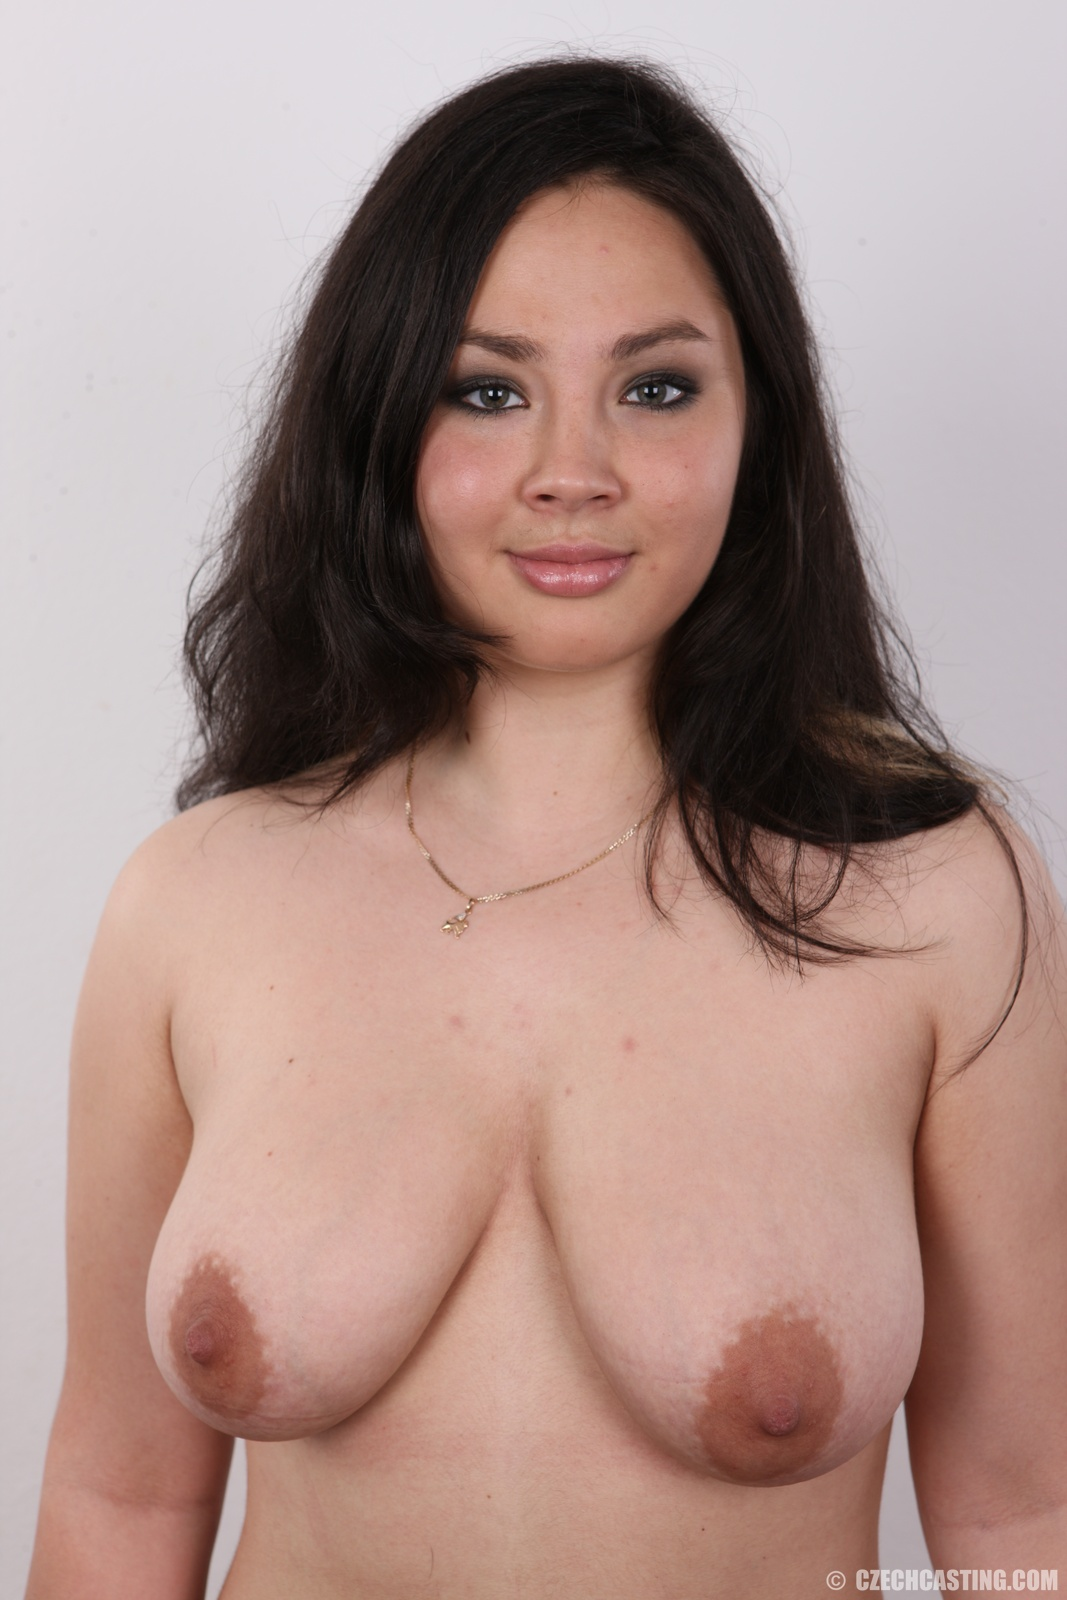 Big tits women czech